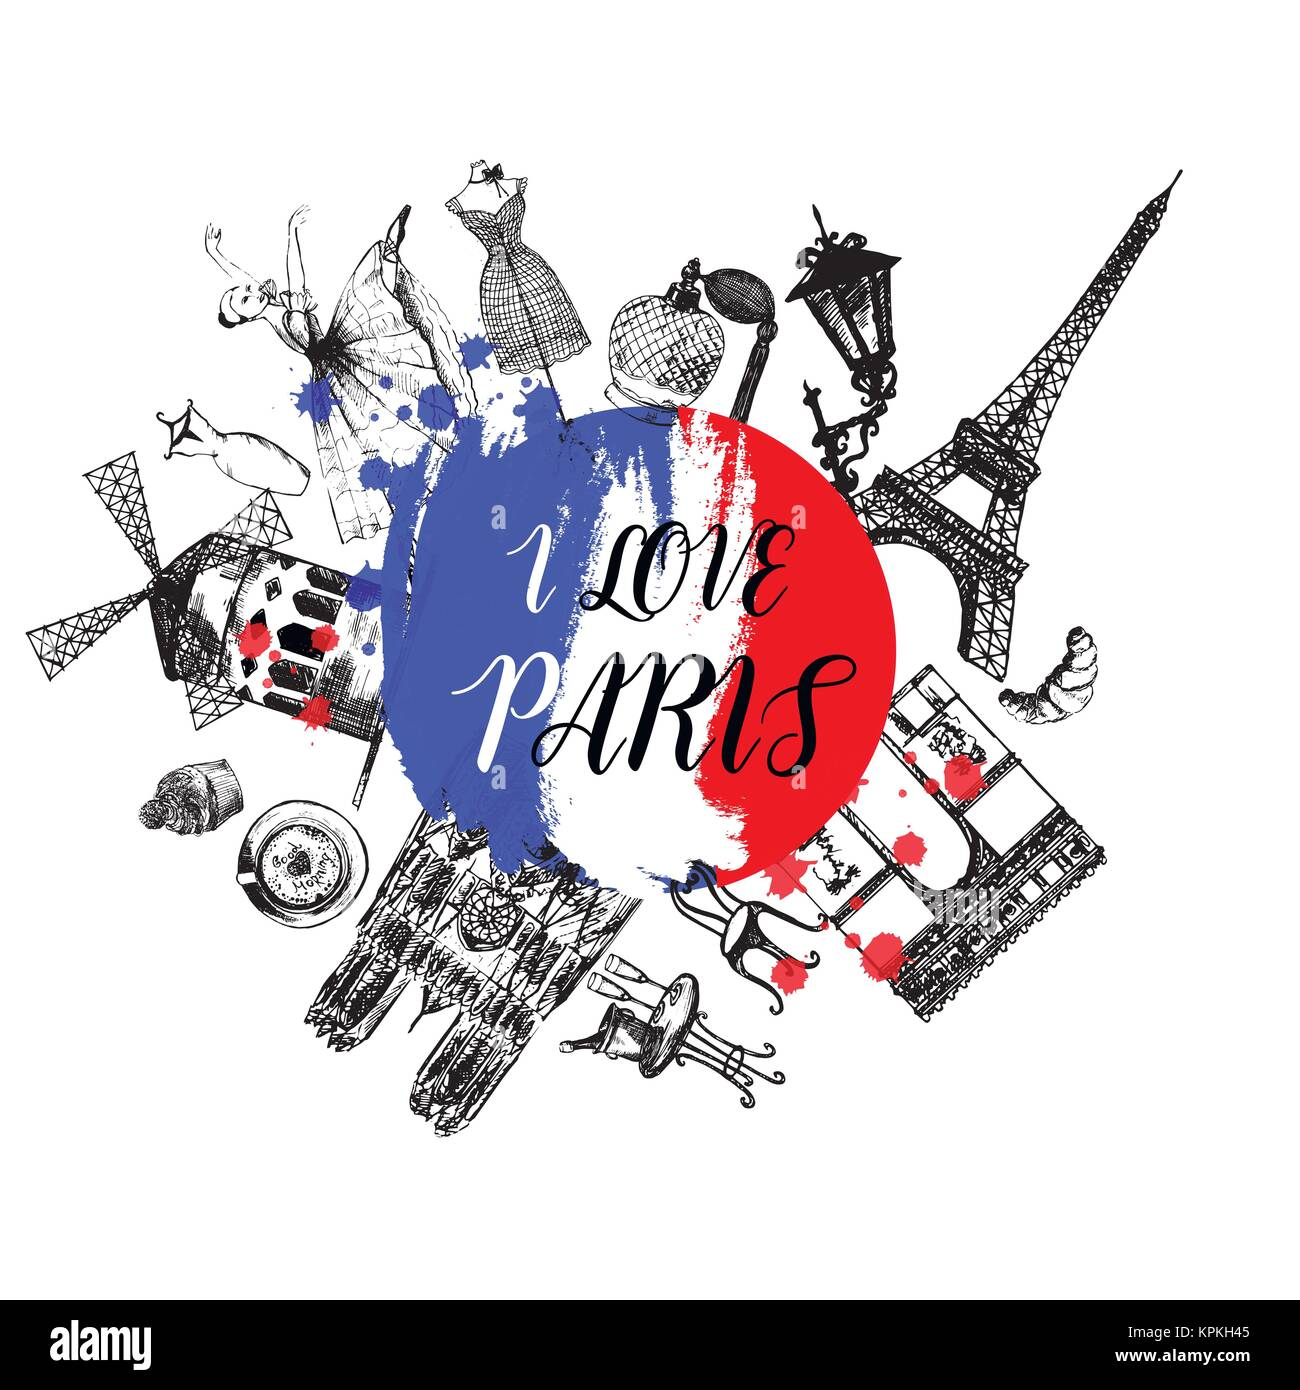 Hand drawn sketch style France themed objects. Vector illustration isolated on white background. - Stock Image